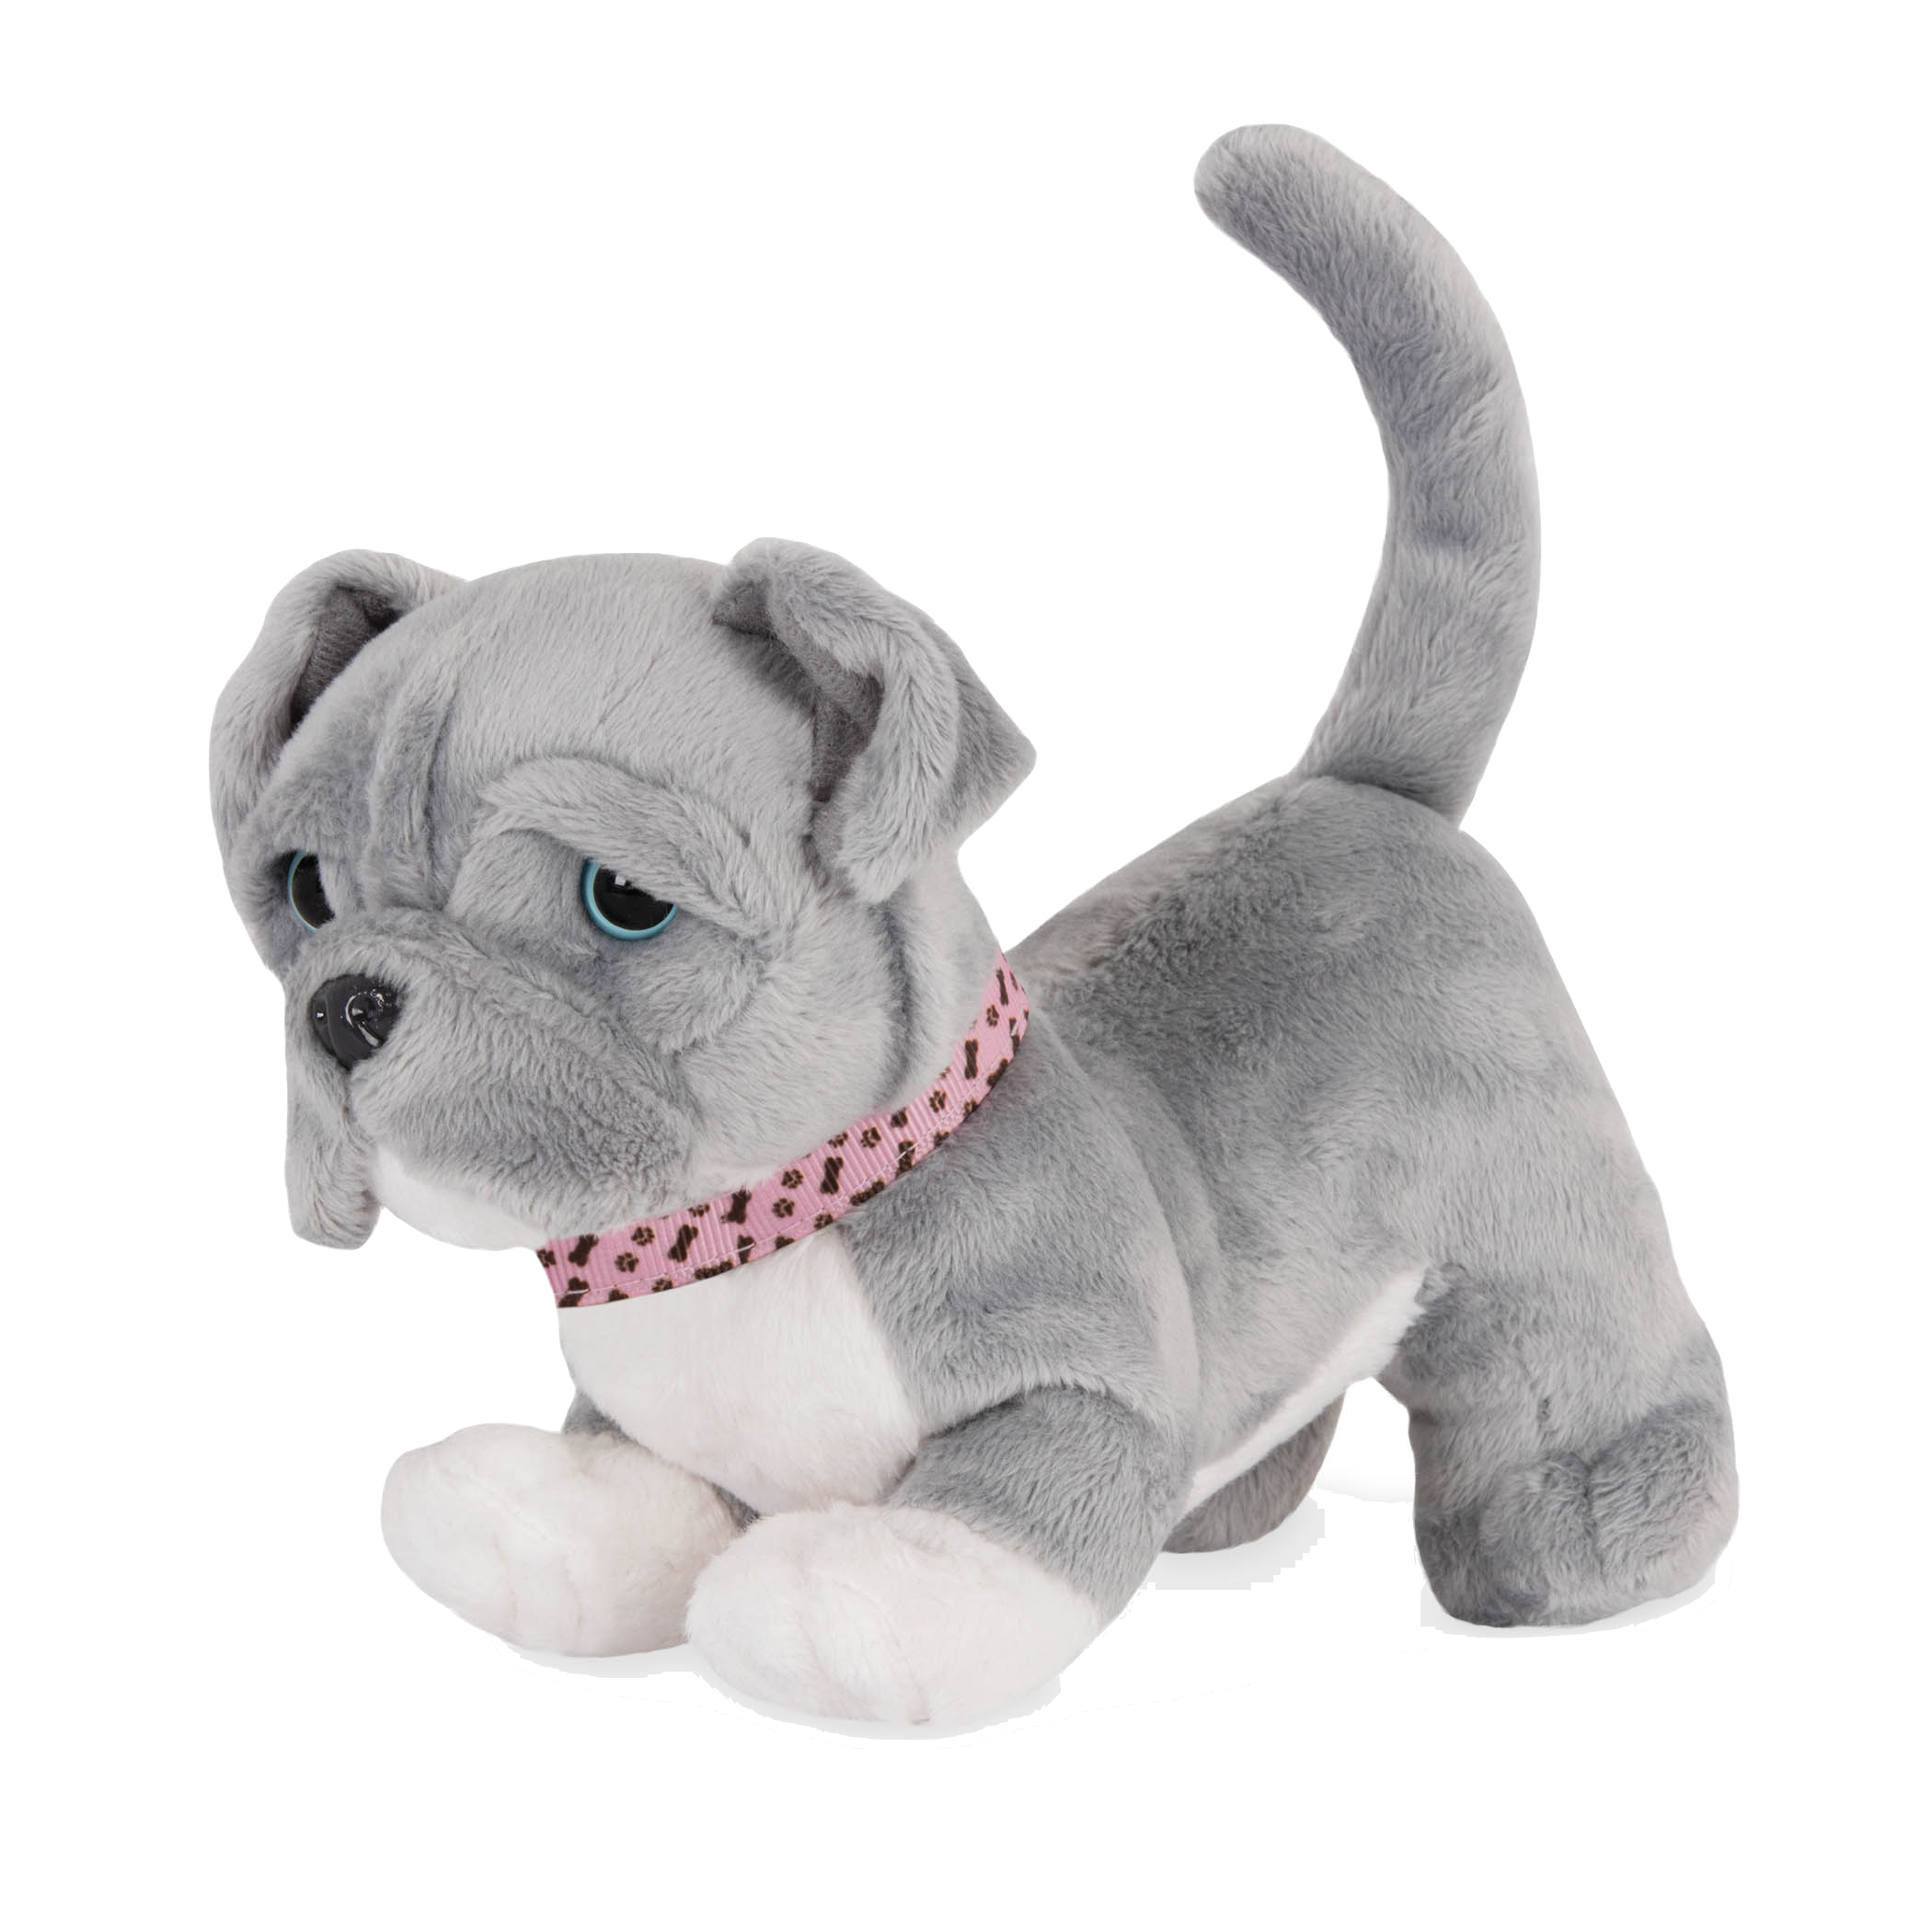 Pitbull Pup with front paws bent